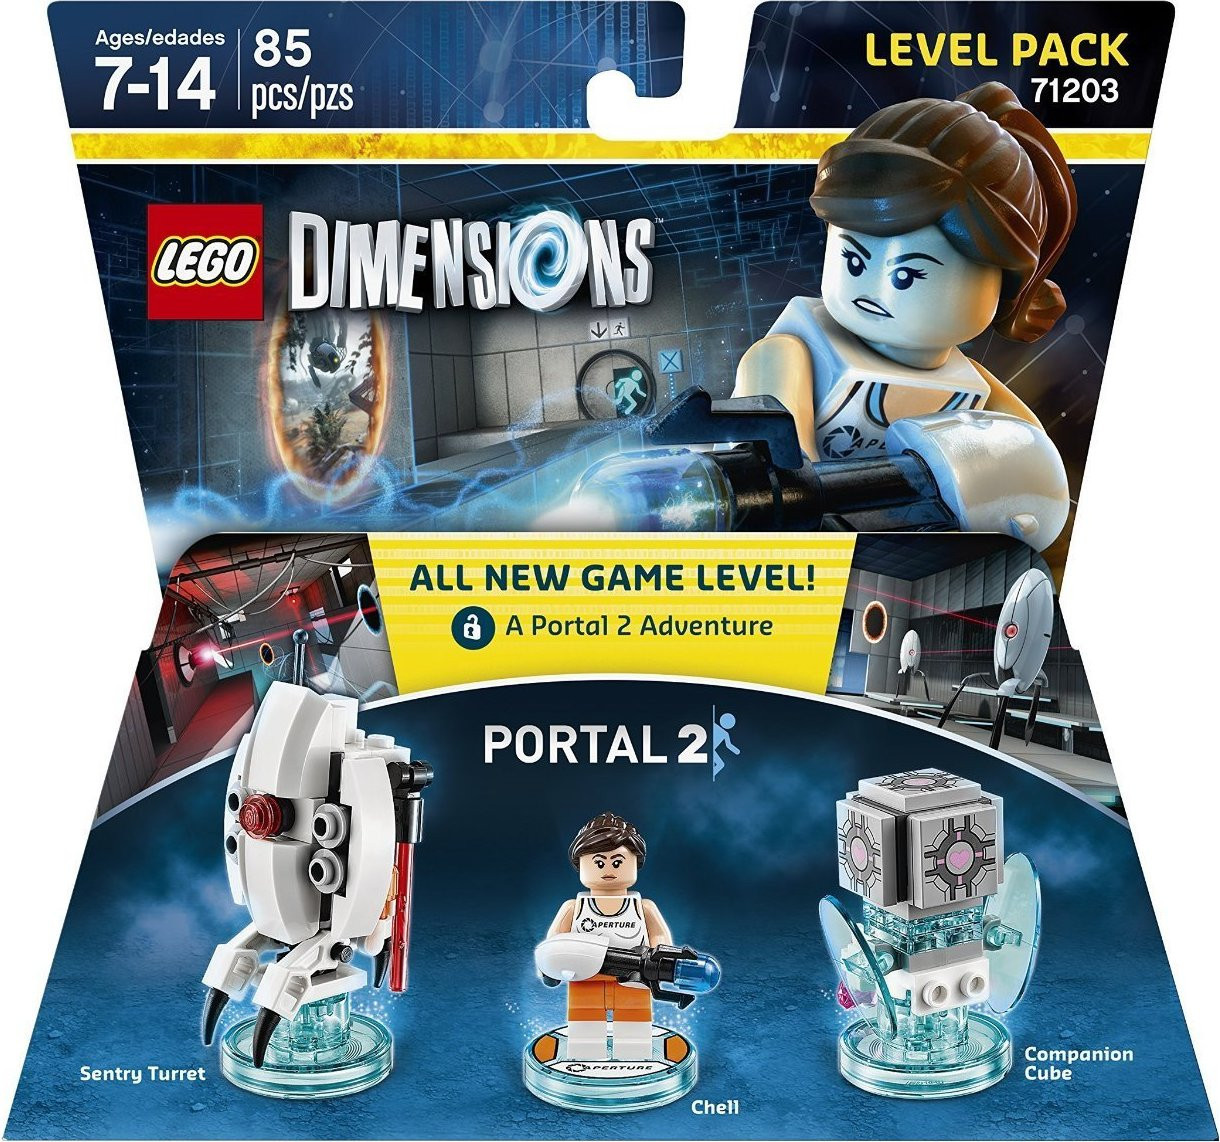 71203 Lego Dimensions Portal 2 (Level Pack)